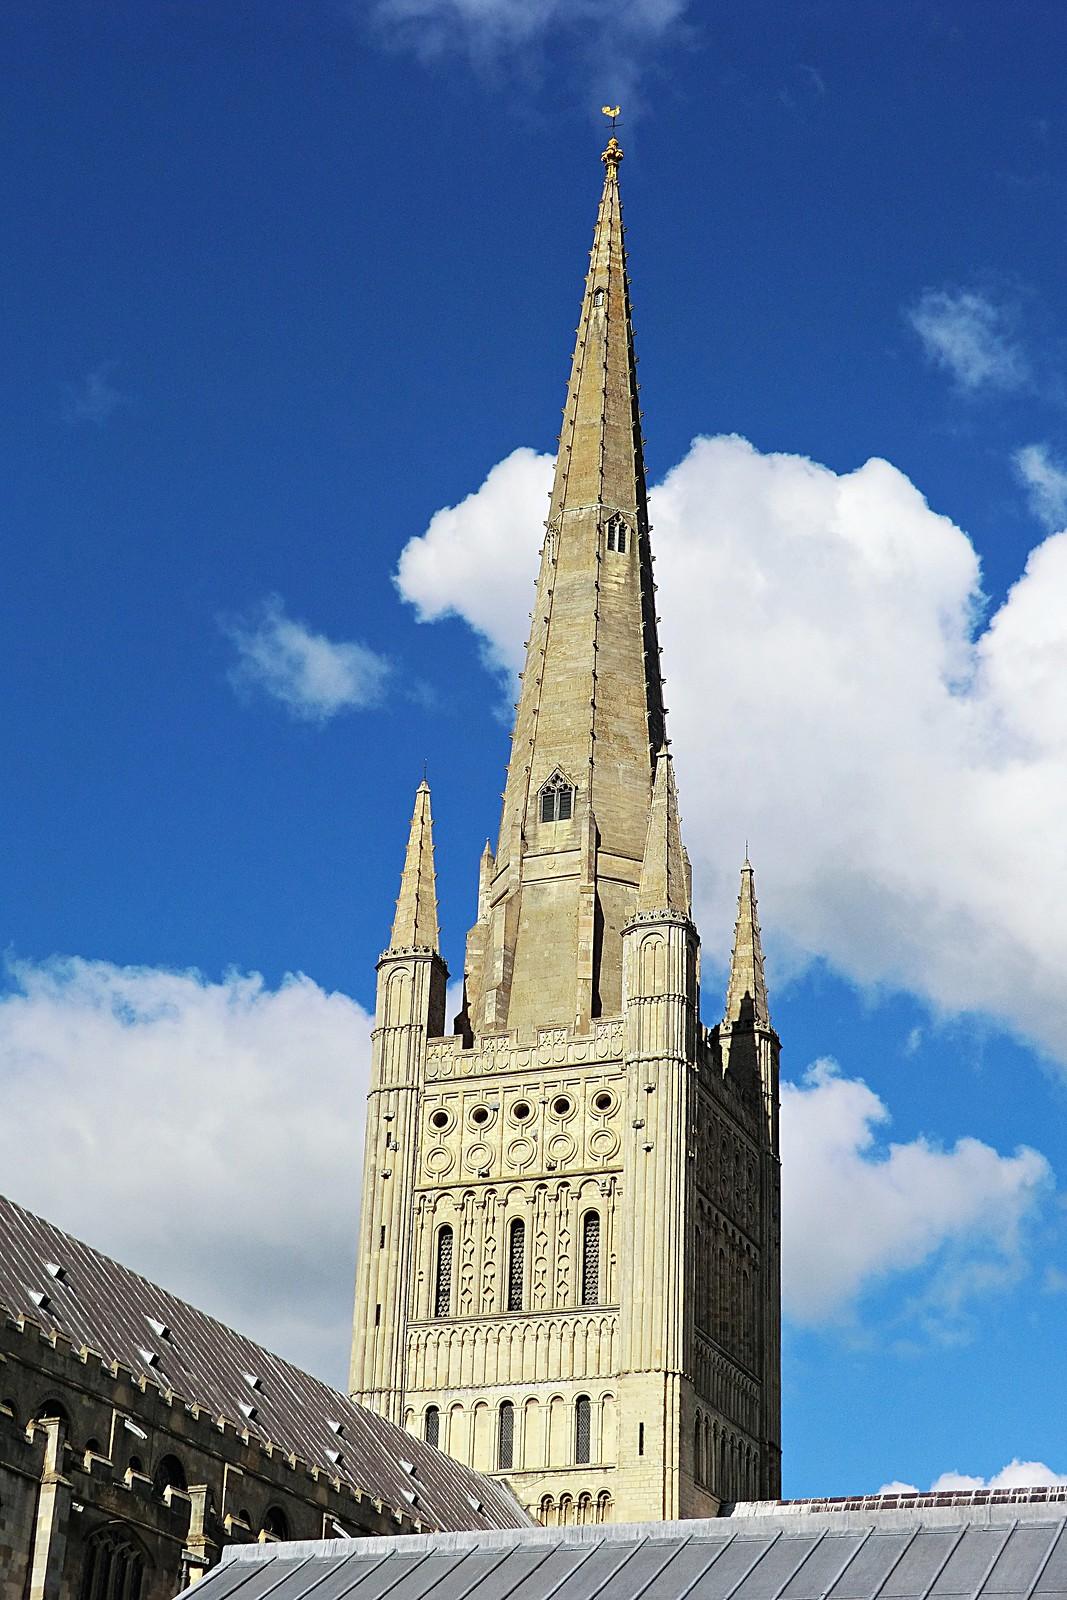 The spire, Norwich Cathedral